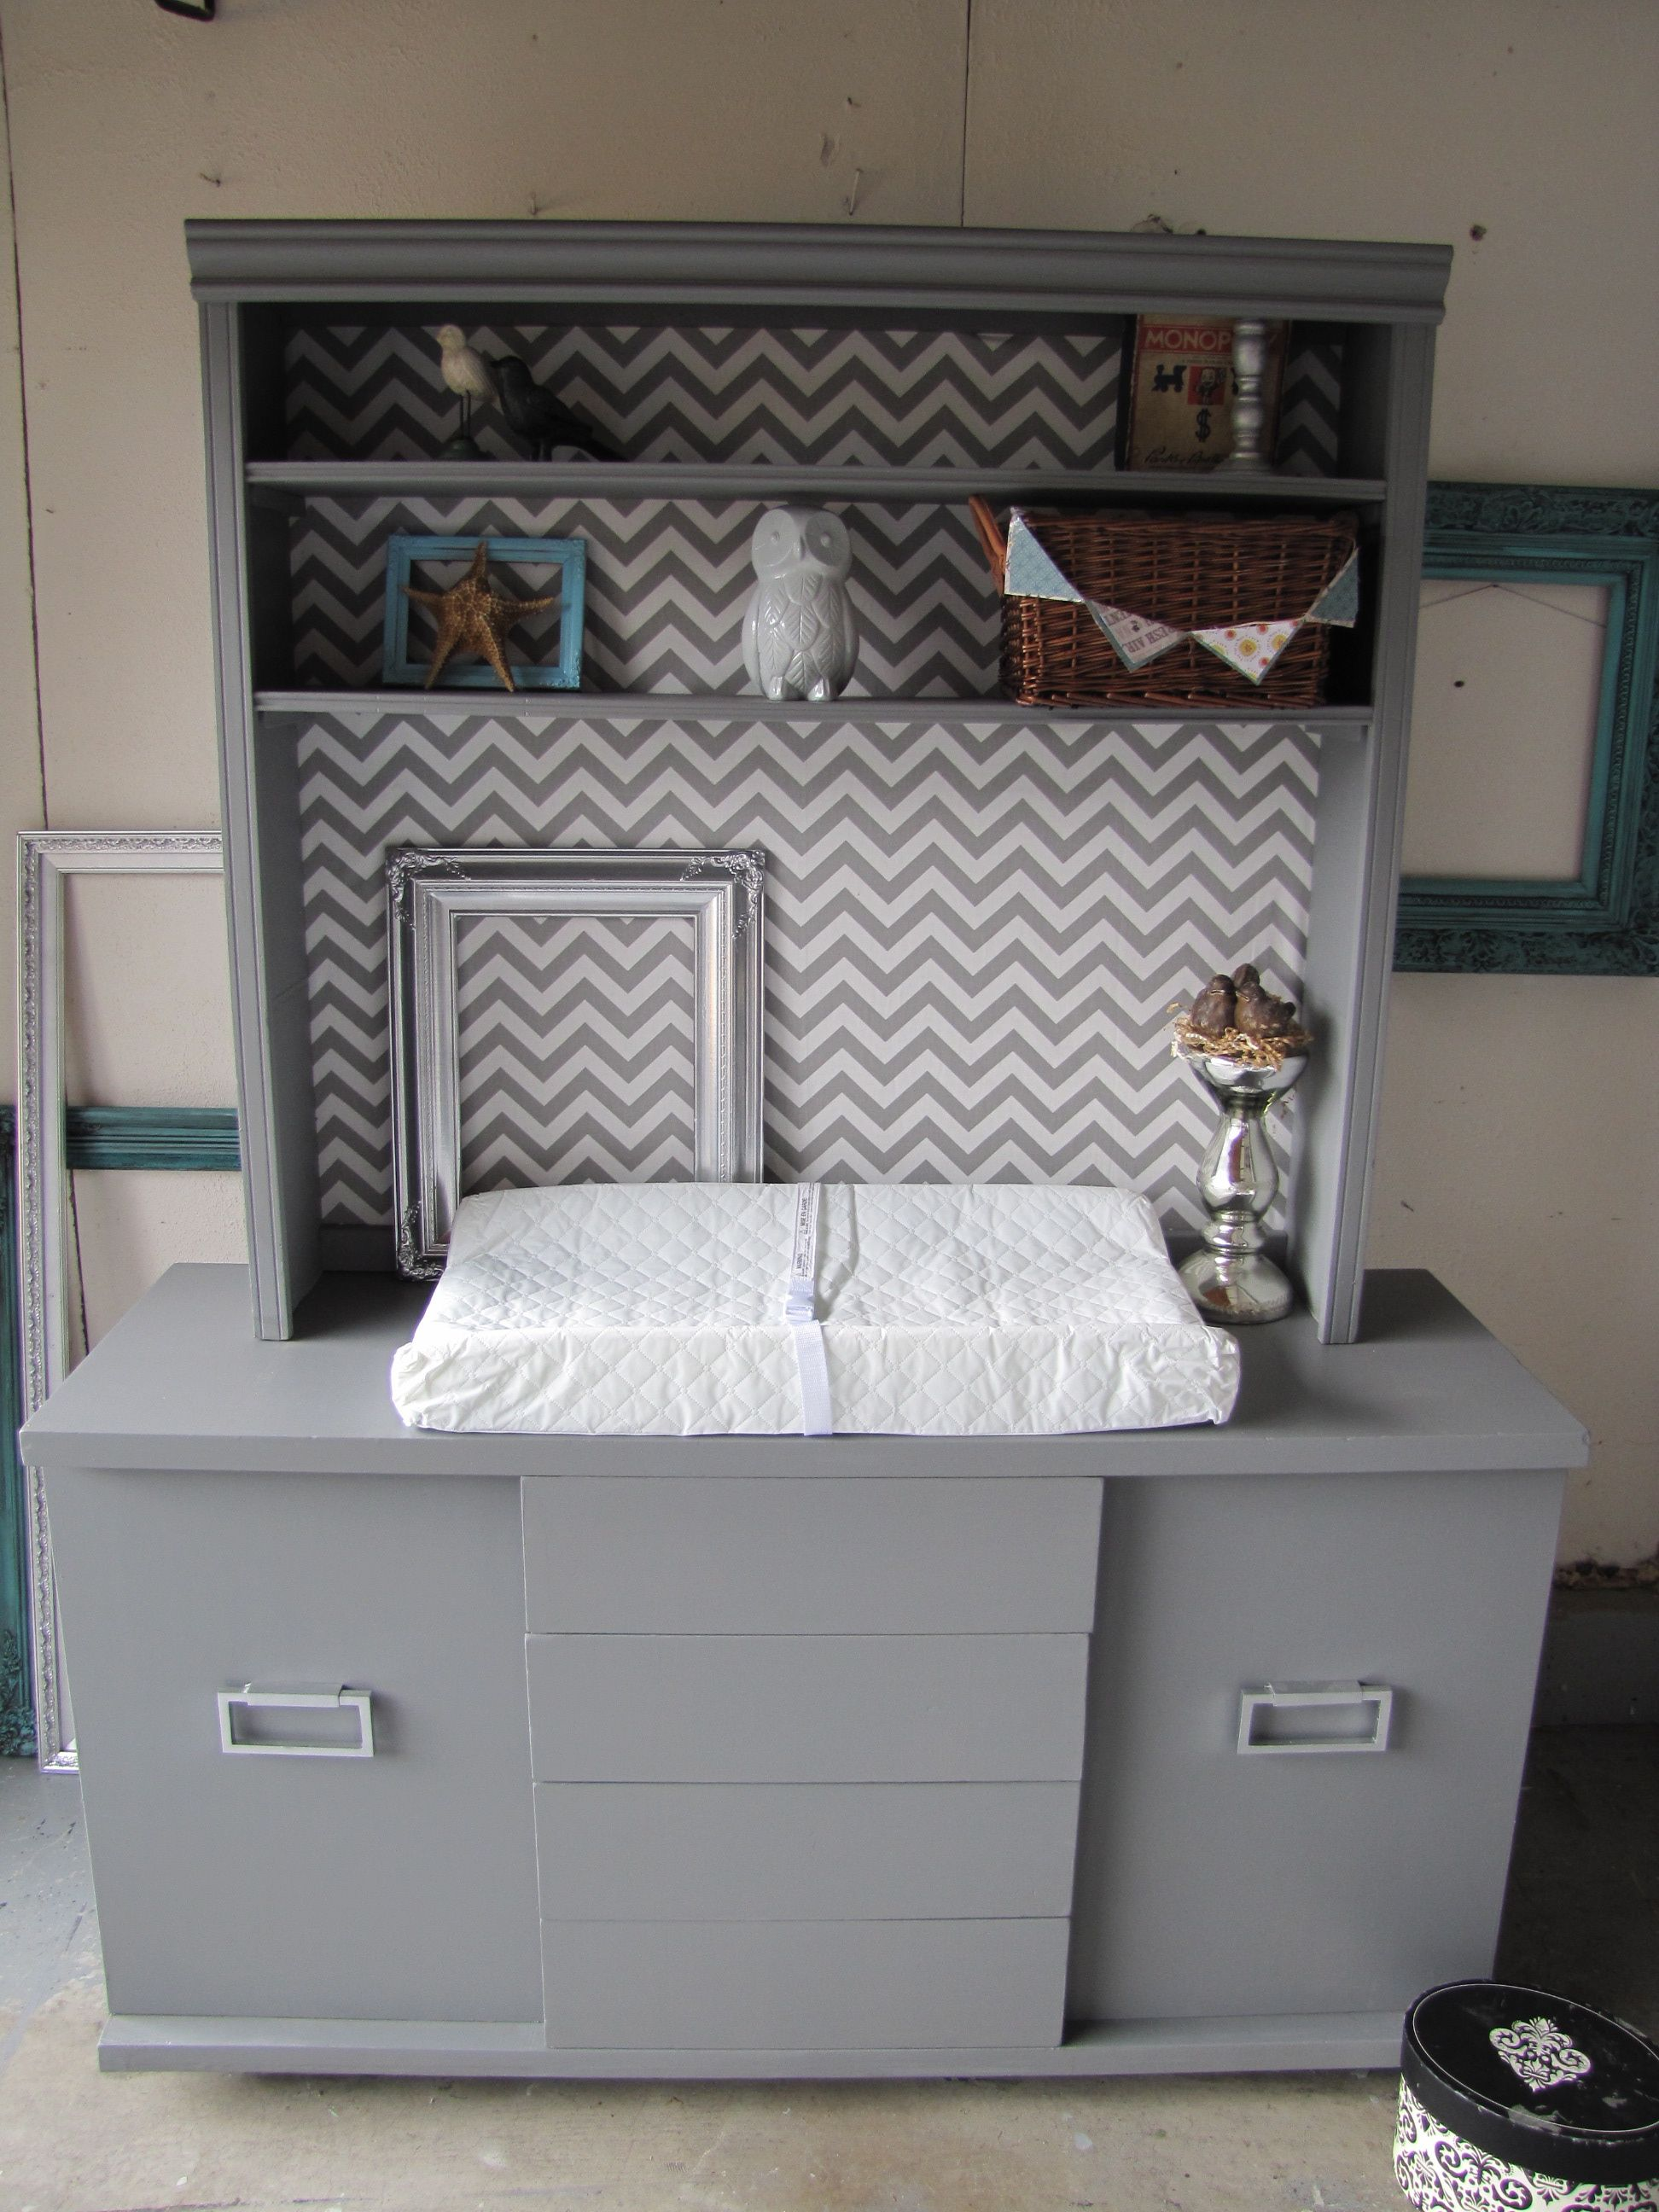 graywhite chevron baby changing table dresser from repurposed vintage sideboard carrie johnson pahlkotter